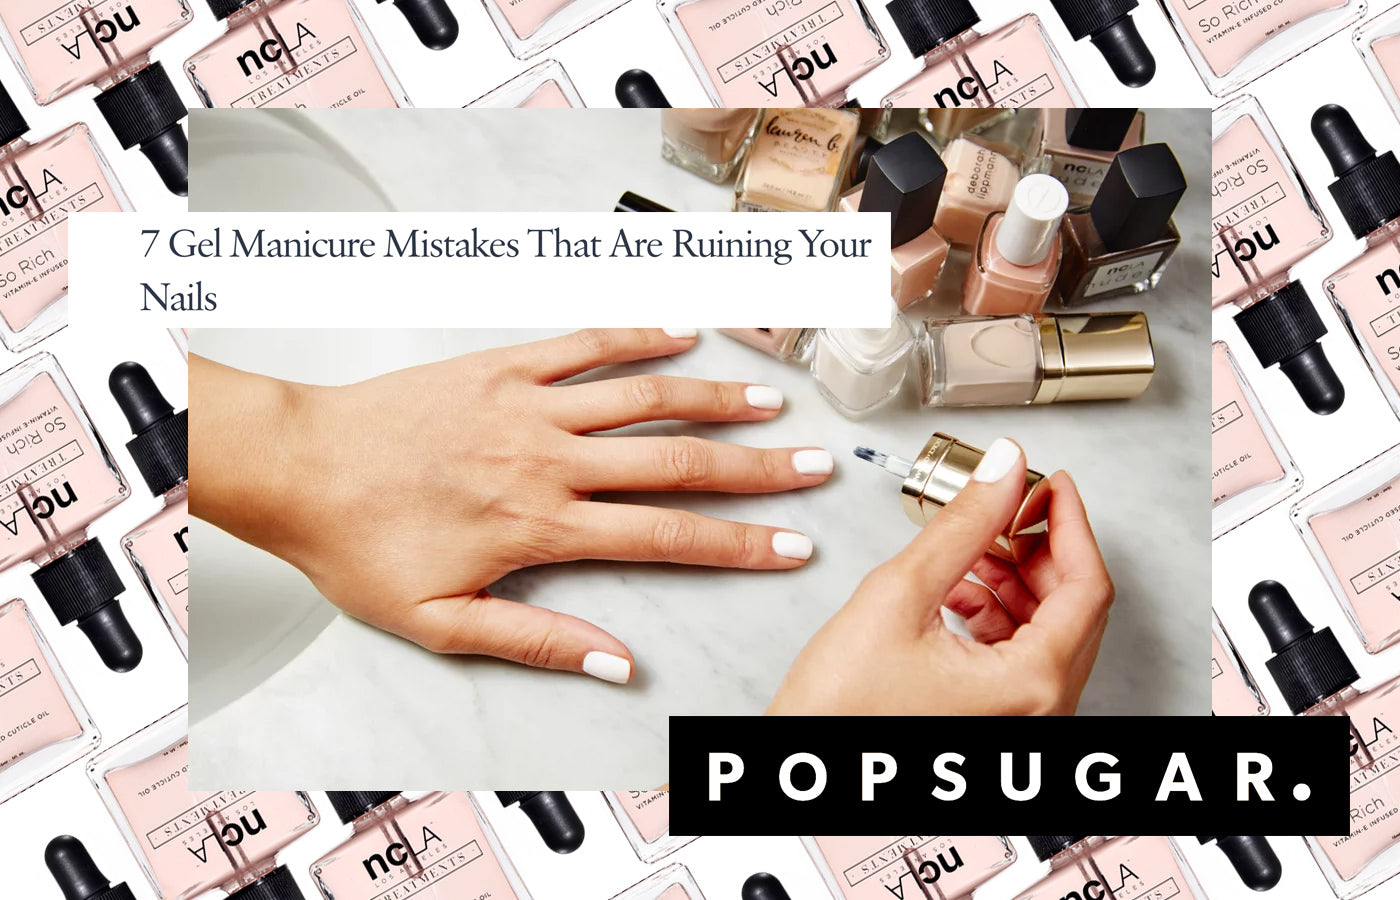 POPSUGAR: 7 Gel Manicure Mistakes That Are Ruining Your Nails – shopncla